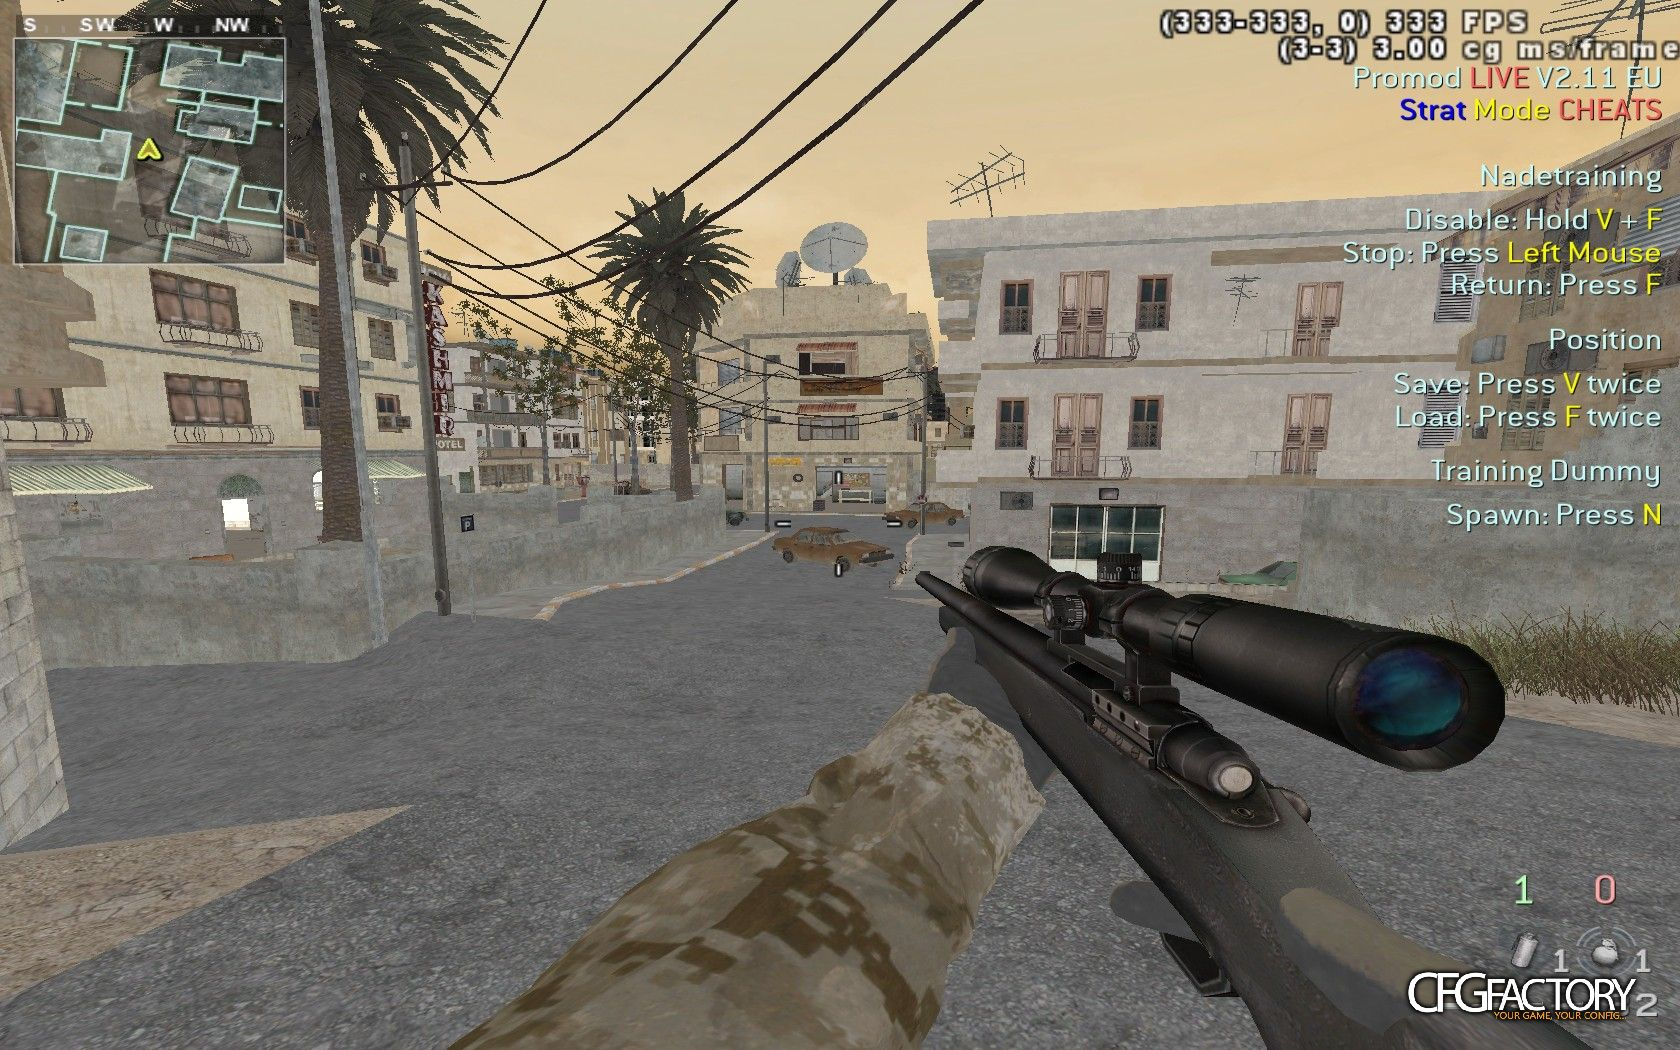 cod4, scripts, holdbreath + zoom, n/a